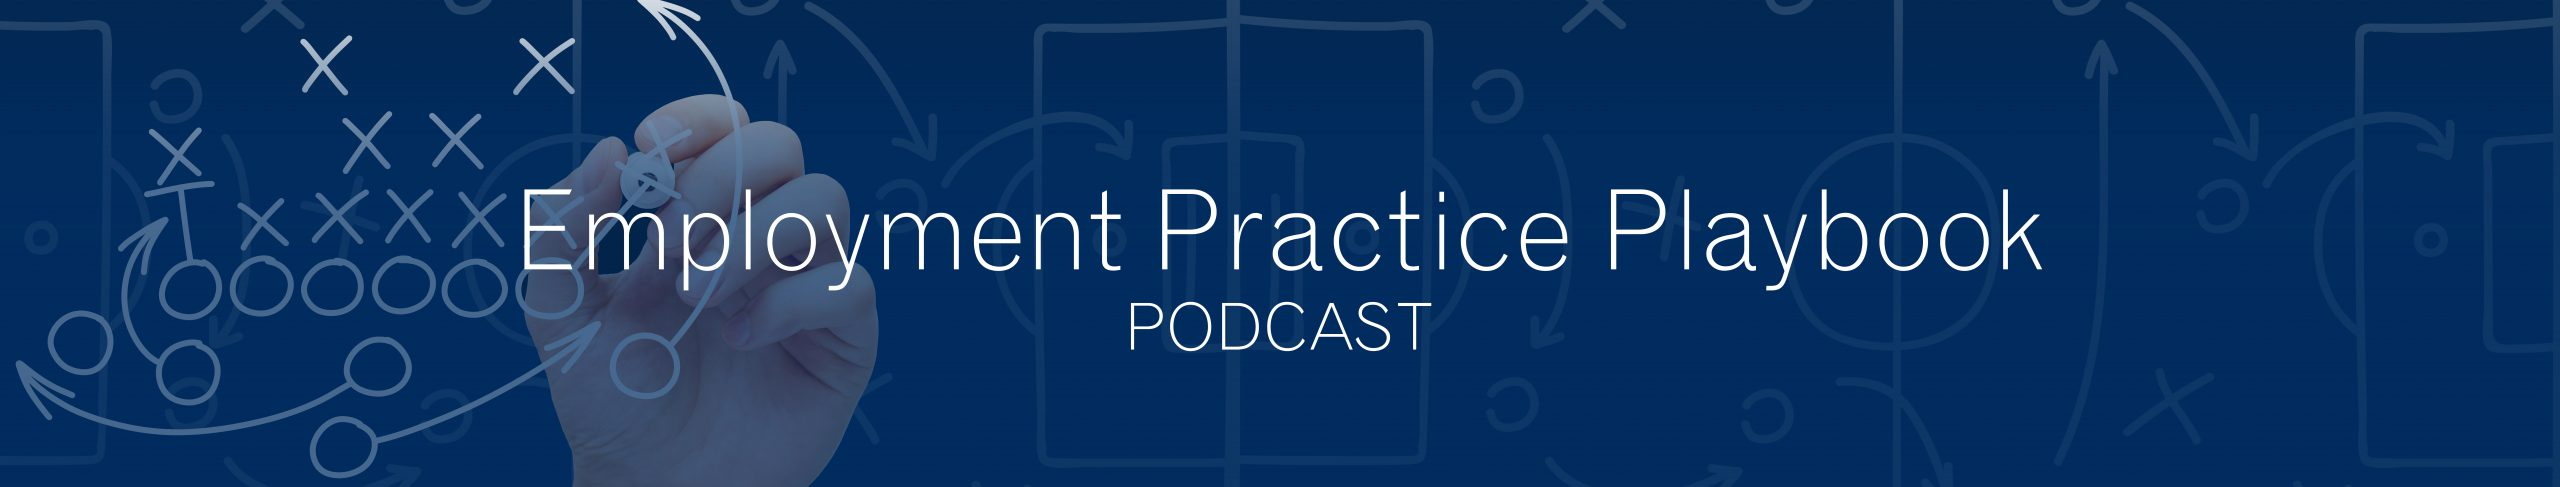 employment practice playbook podcast-banner